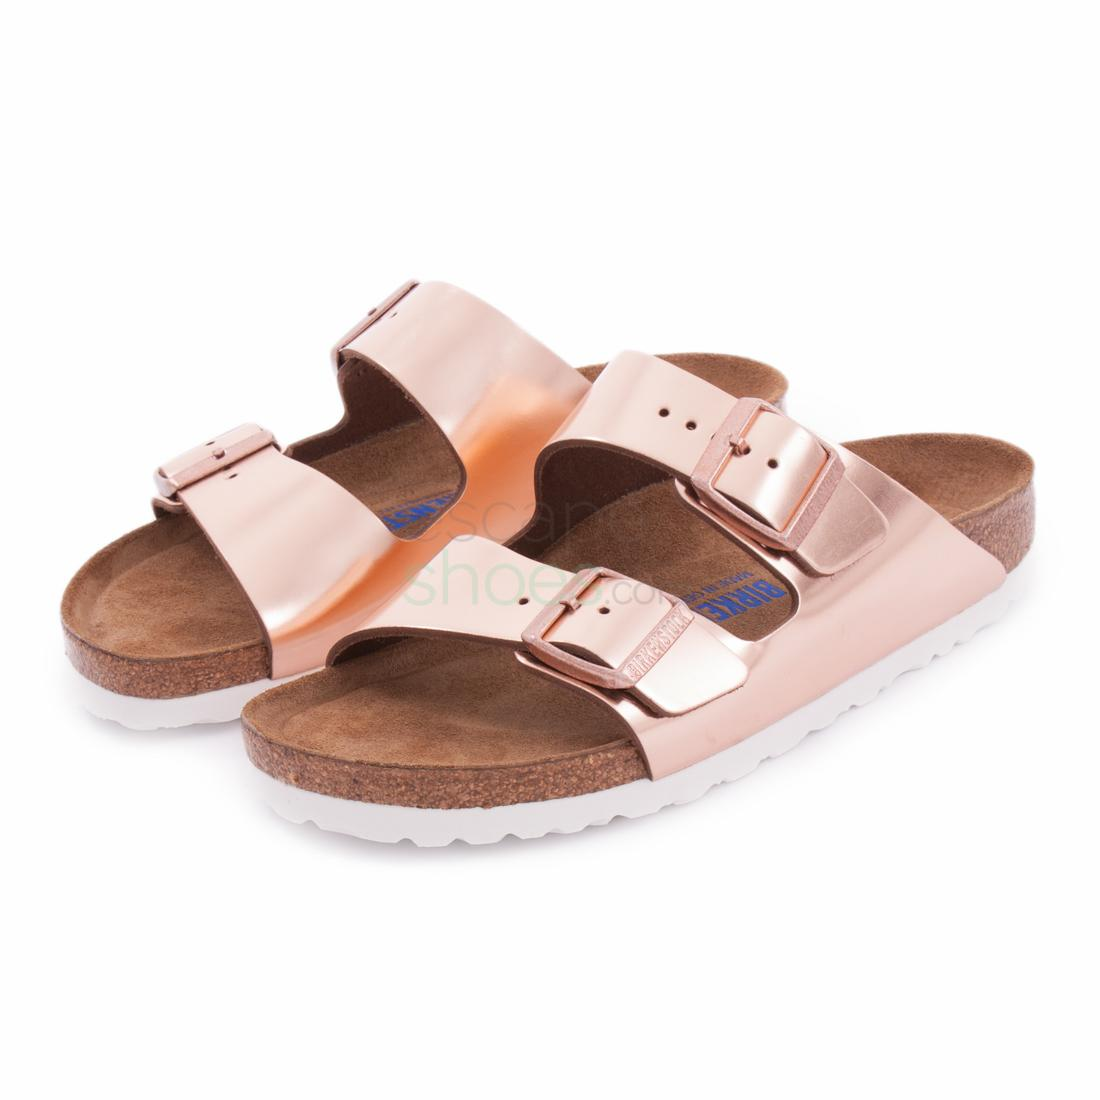 337cffde93a Buy your Sandals BIRKENSTOCK Arizona 952093 Metallic Copper here ...